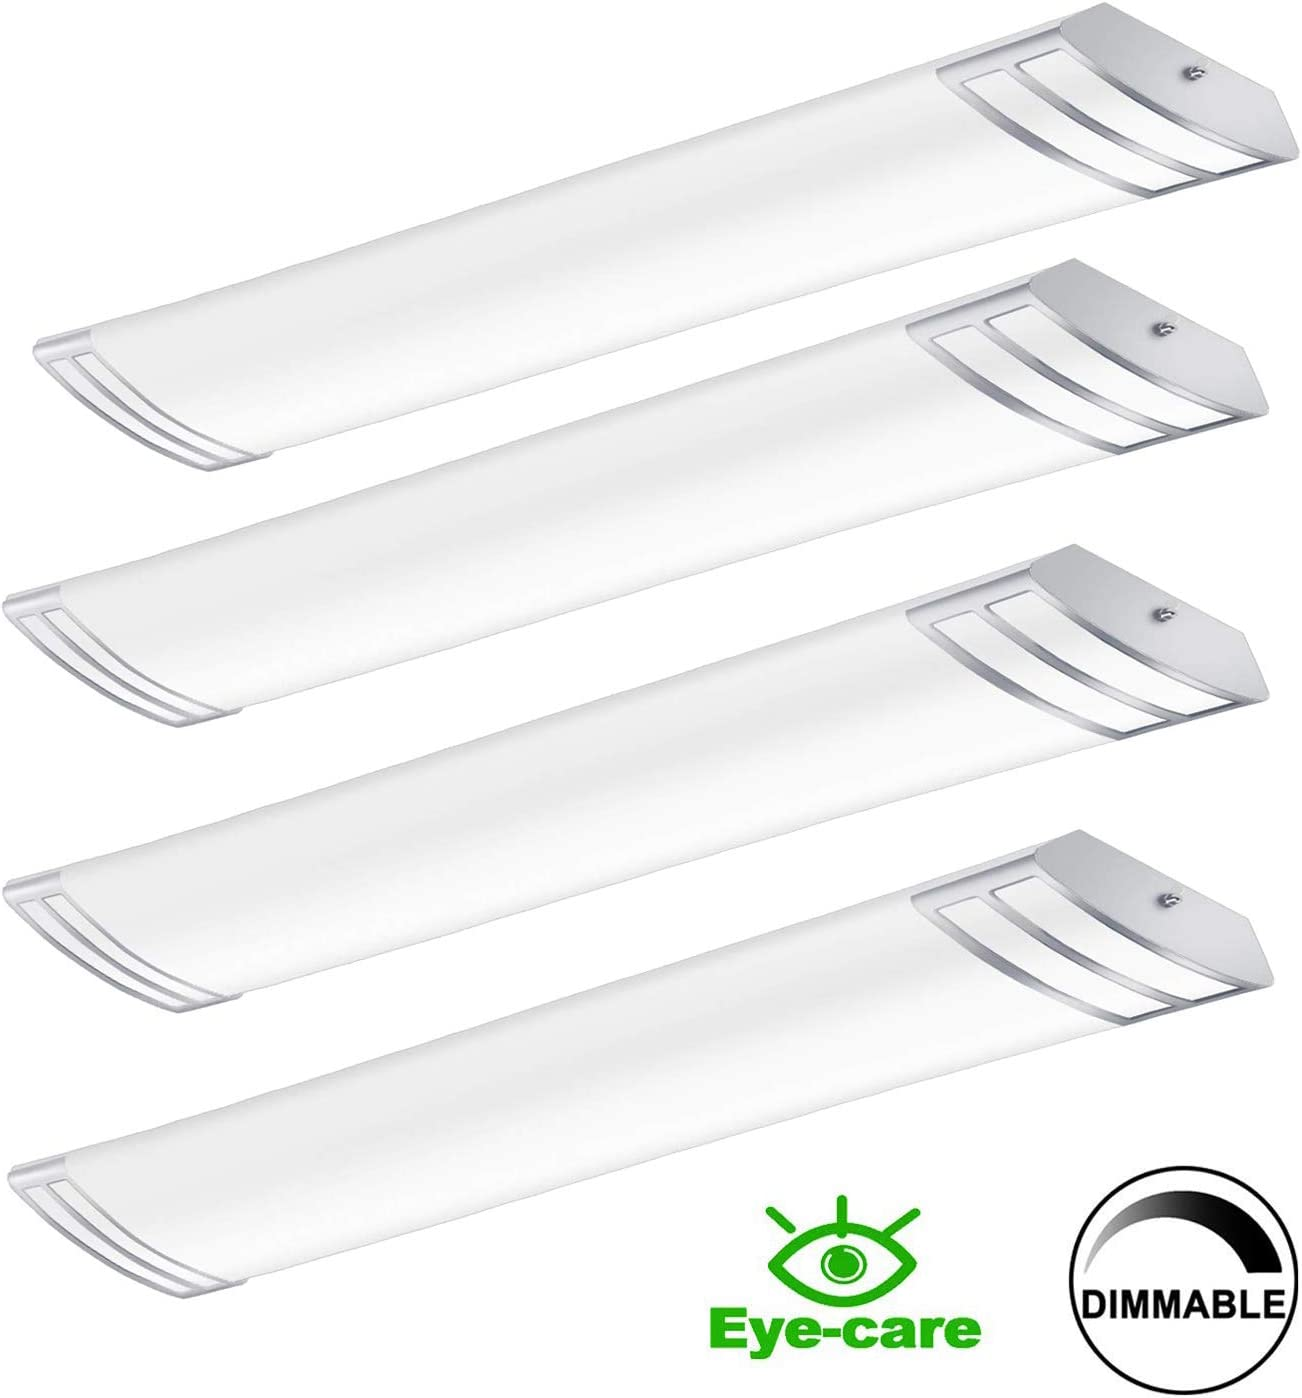 4FT LED Light Fixture 50W 5600lm Linear Light Flush Mount, 4000K, 1-10V Dimmable, 4 Foot LED Kitchen Ceiling Light Fixtures for Craft Room, Laundry, Fluorescent Replacement, 4 Pack